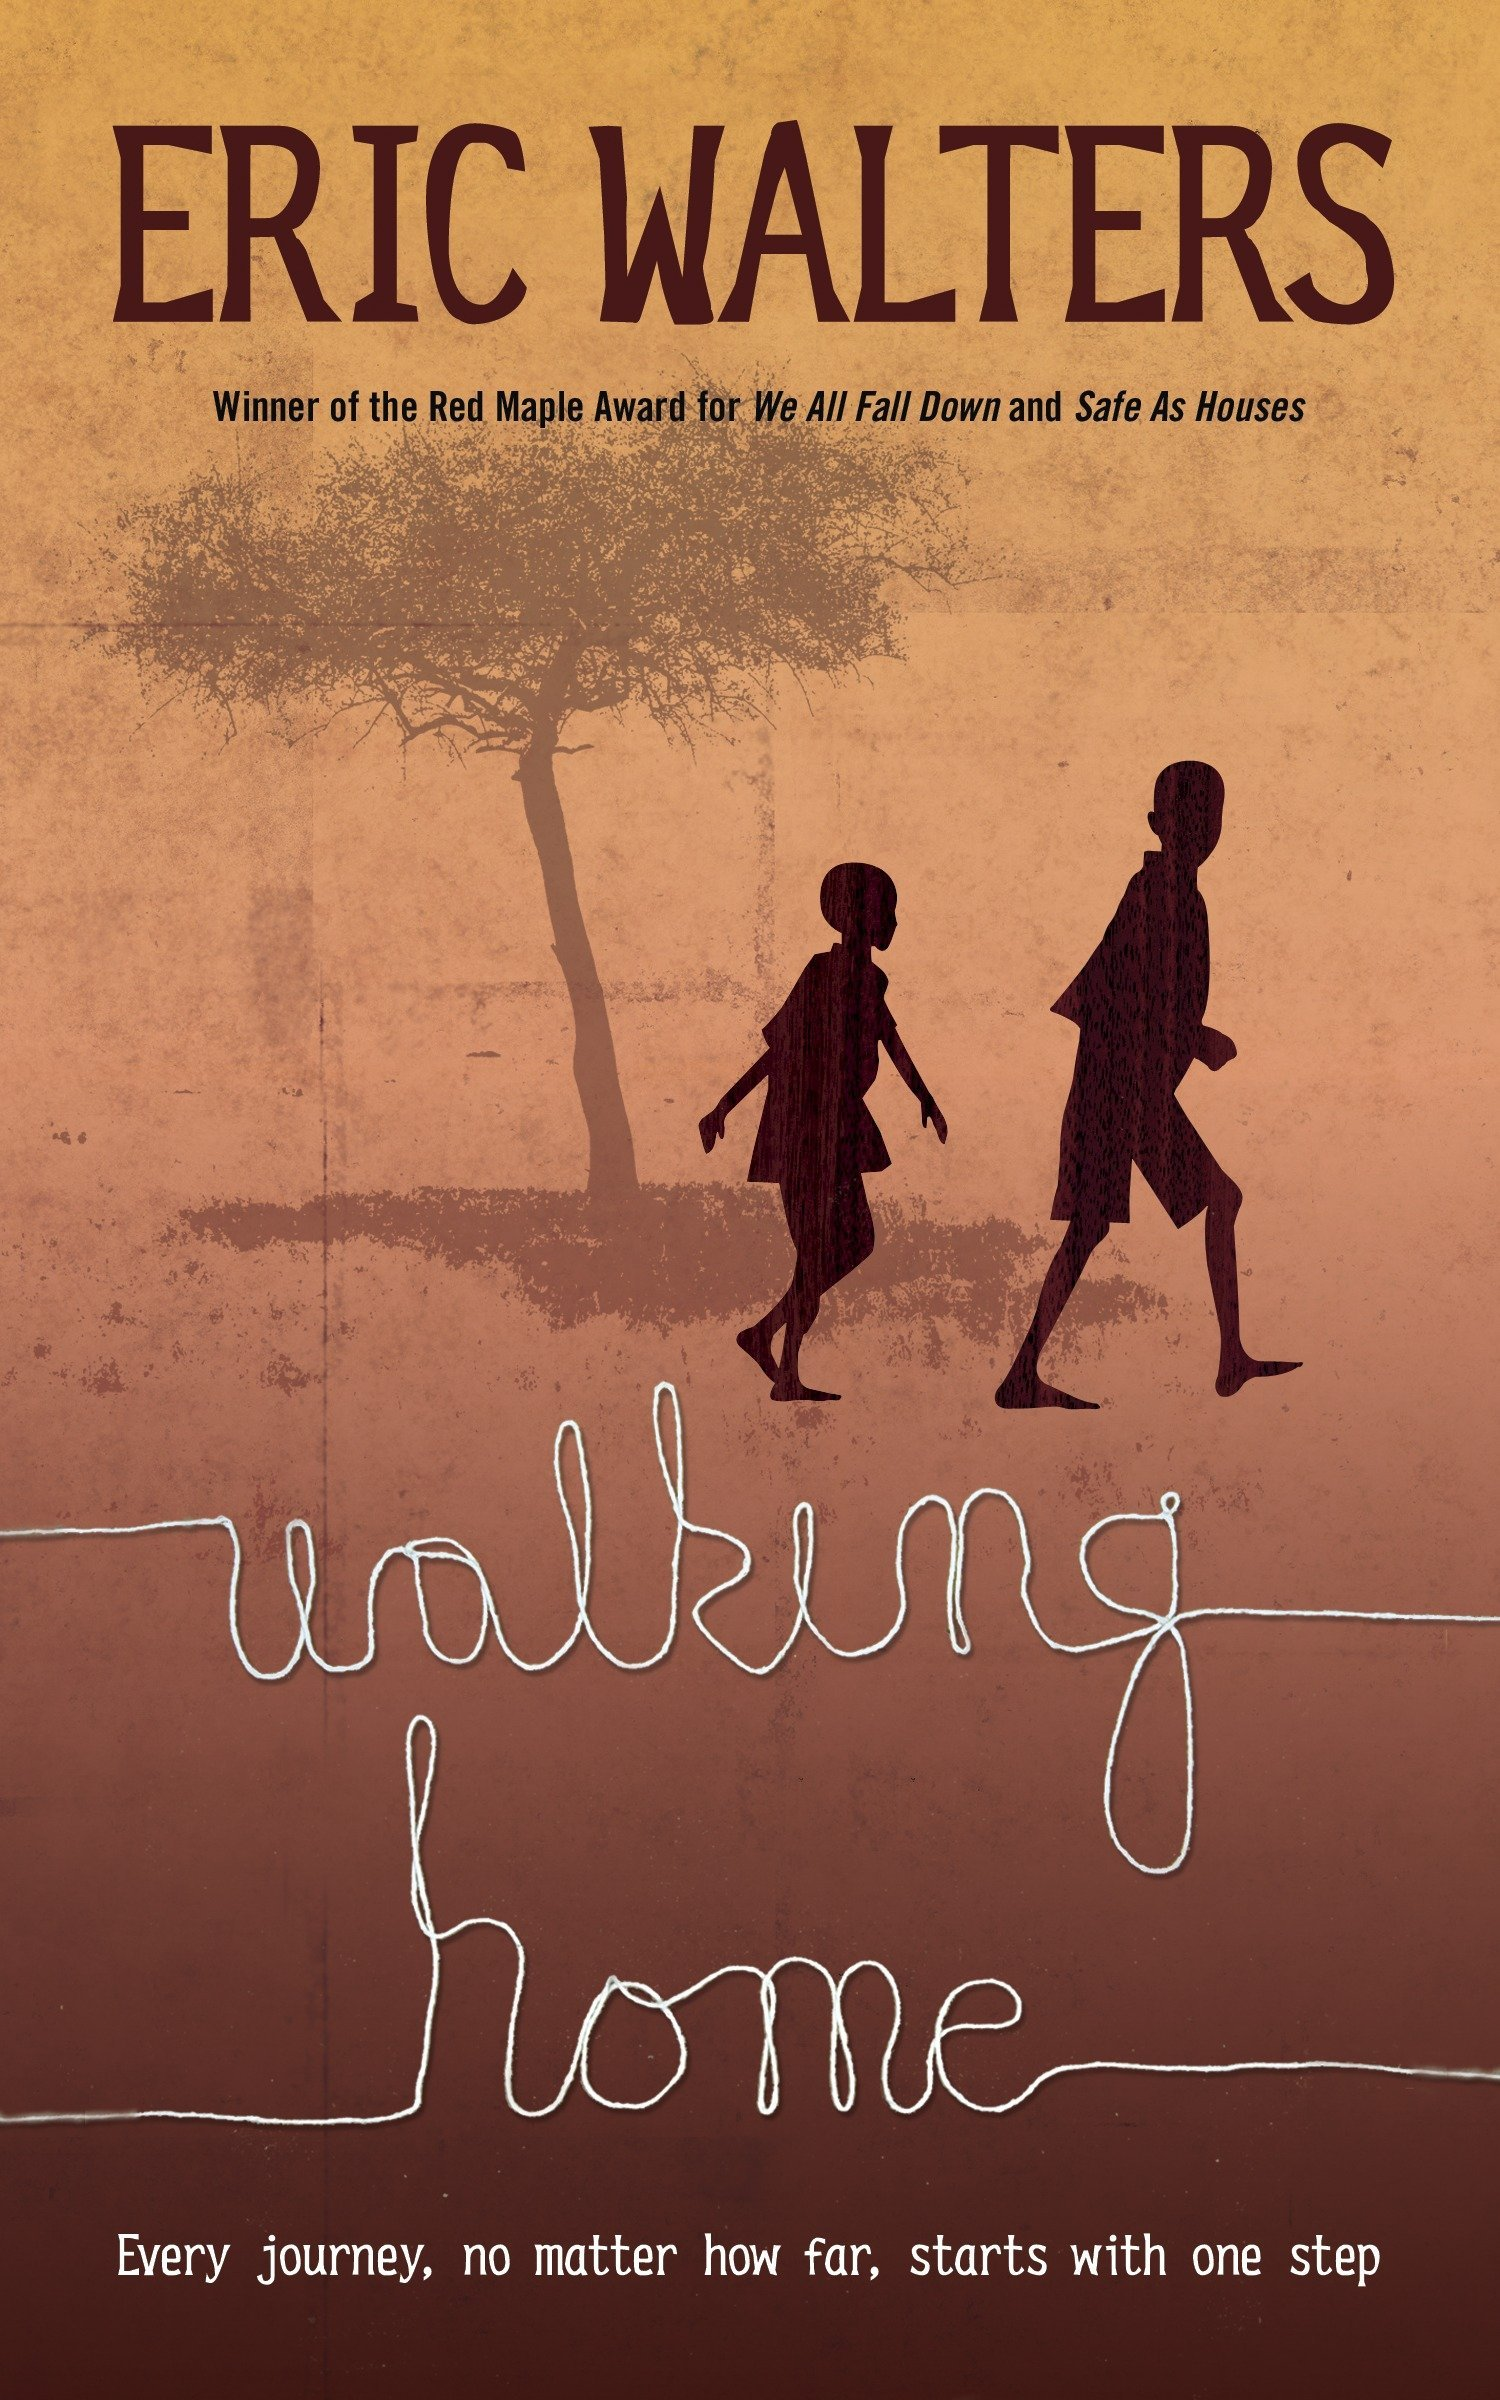 Walking Home: Eric Walters: 9780385681575: Amazon.com: Books